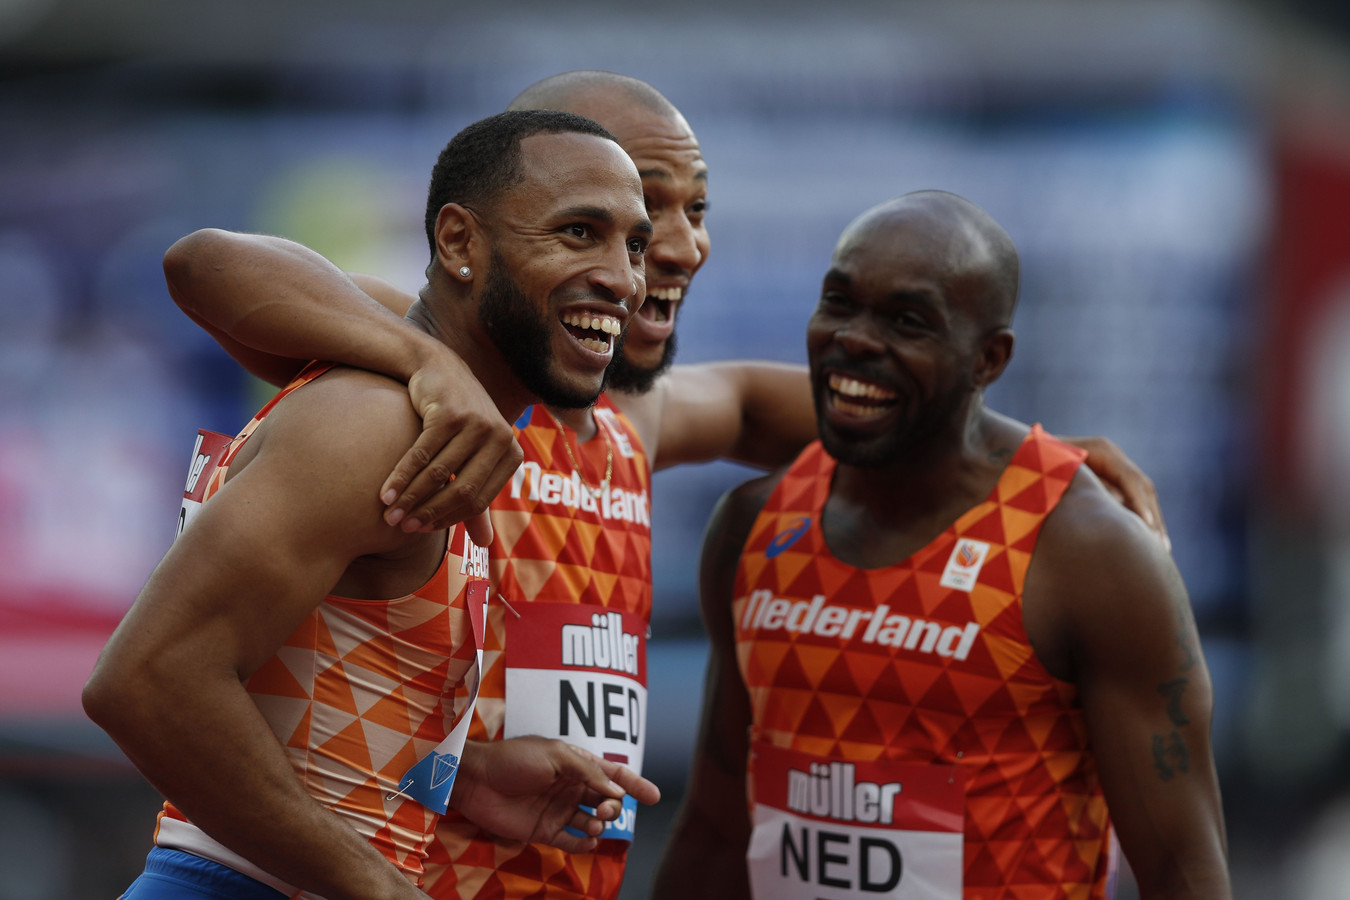 Christopher Garcia, Hensley Paulina en Churandy Martina vieren het Nederlands record.